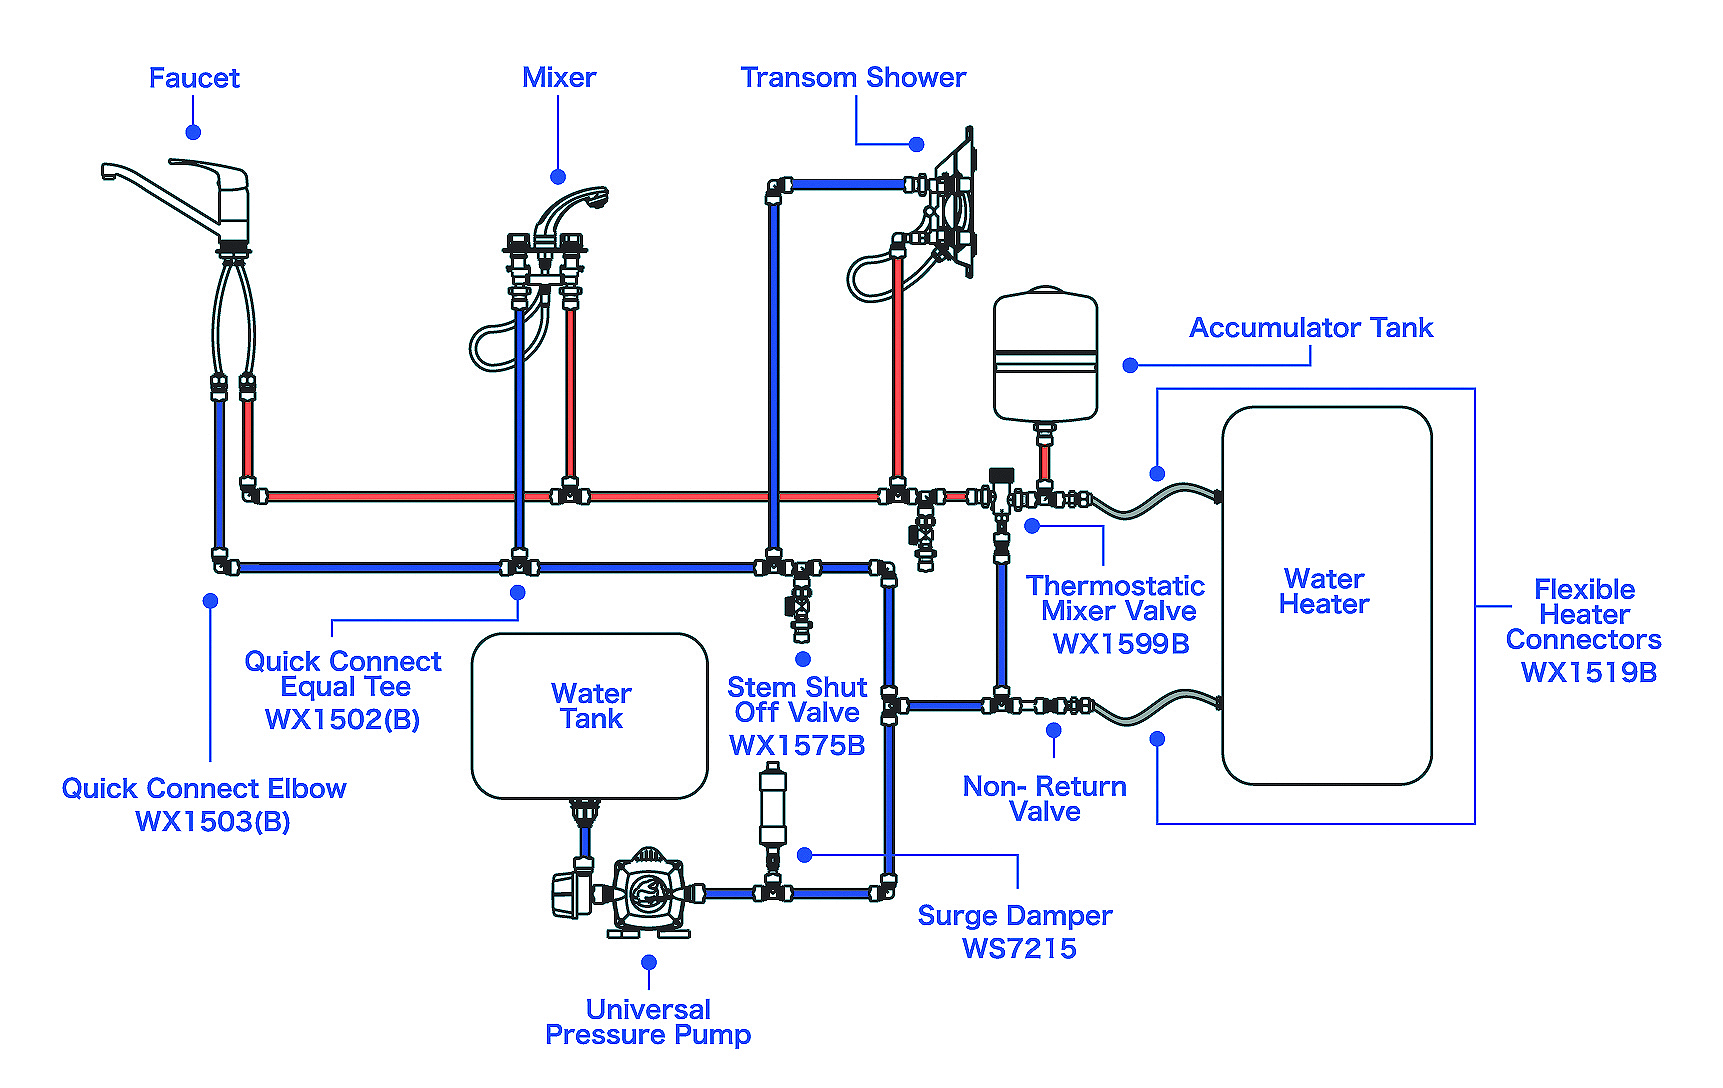 Pressurized Freshwater Systems West Marine Look At A Typical 24 Volt System With 12 Engine Connection The Whale Water Is User Friendly For Do It Yourself Boat Owner